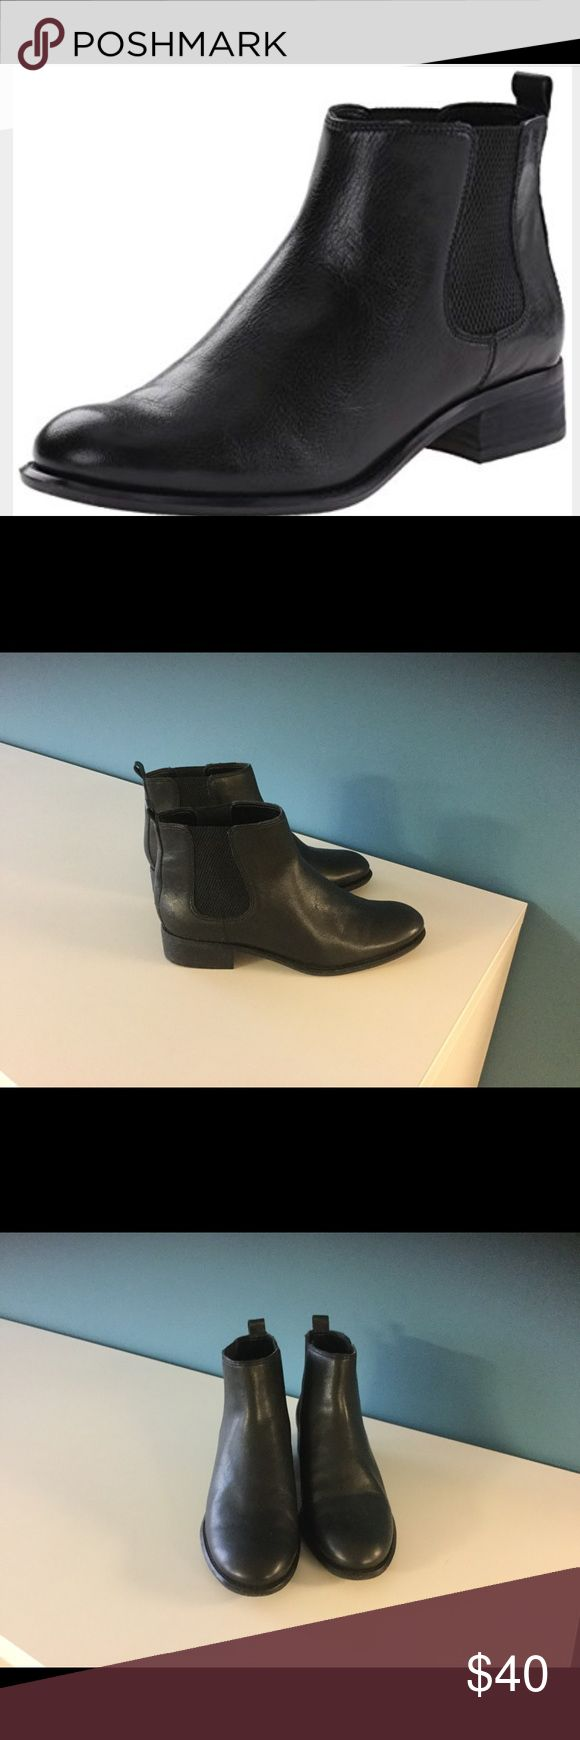 Nine West women's leather ankle boot. NWOT Nine West women's leather ankle boot. NWOT   No box,  purchased and realized it was a duplicate pair,   No trade or low balling. Price firm Nine West Shoes Ankle Boots & Booties